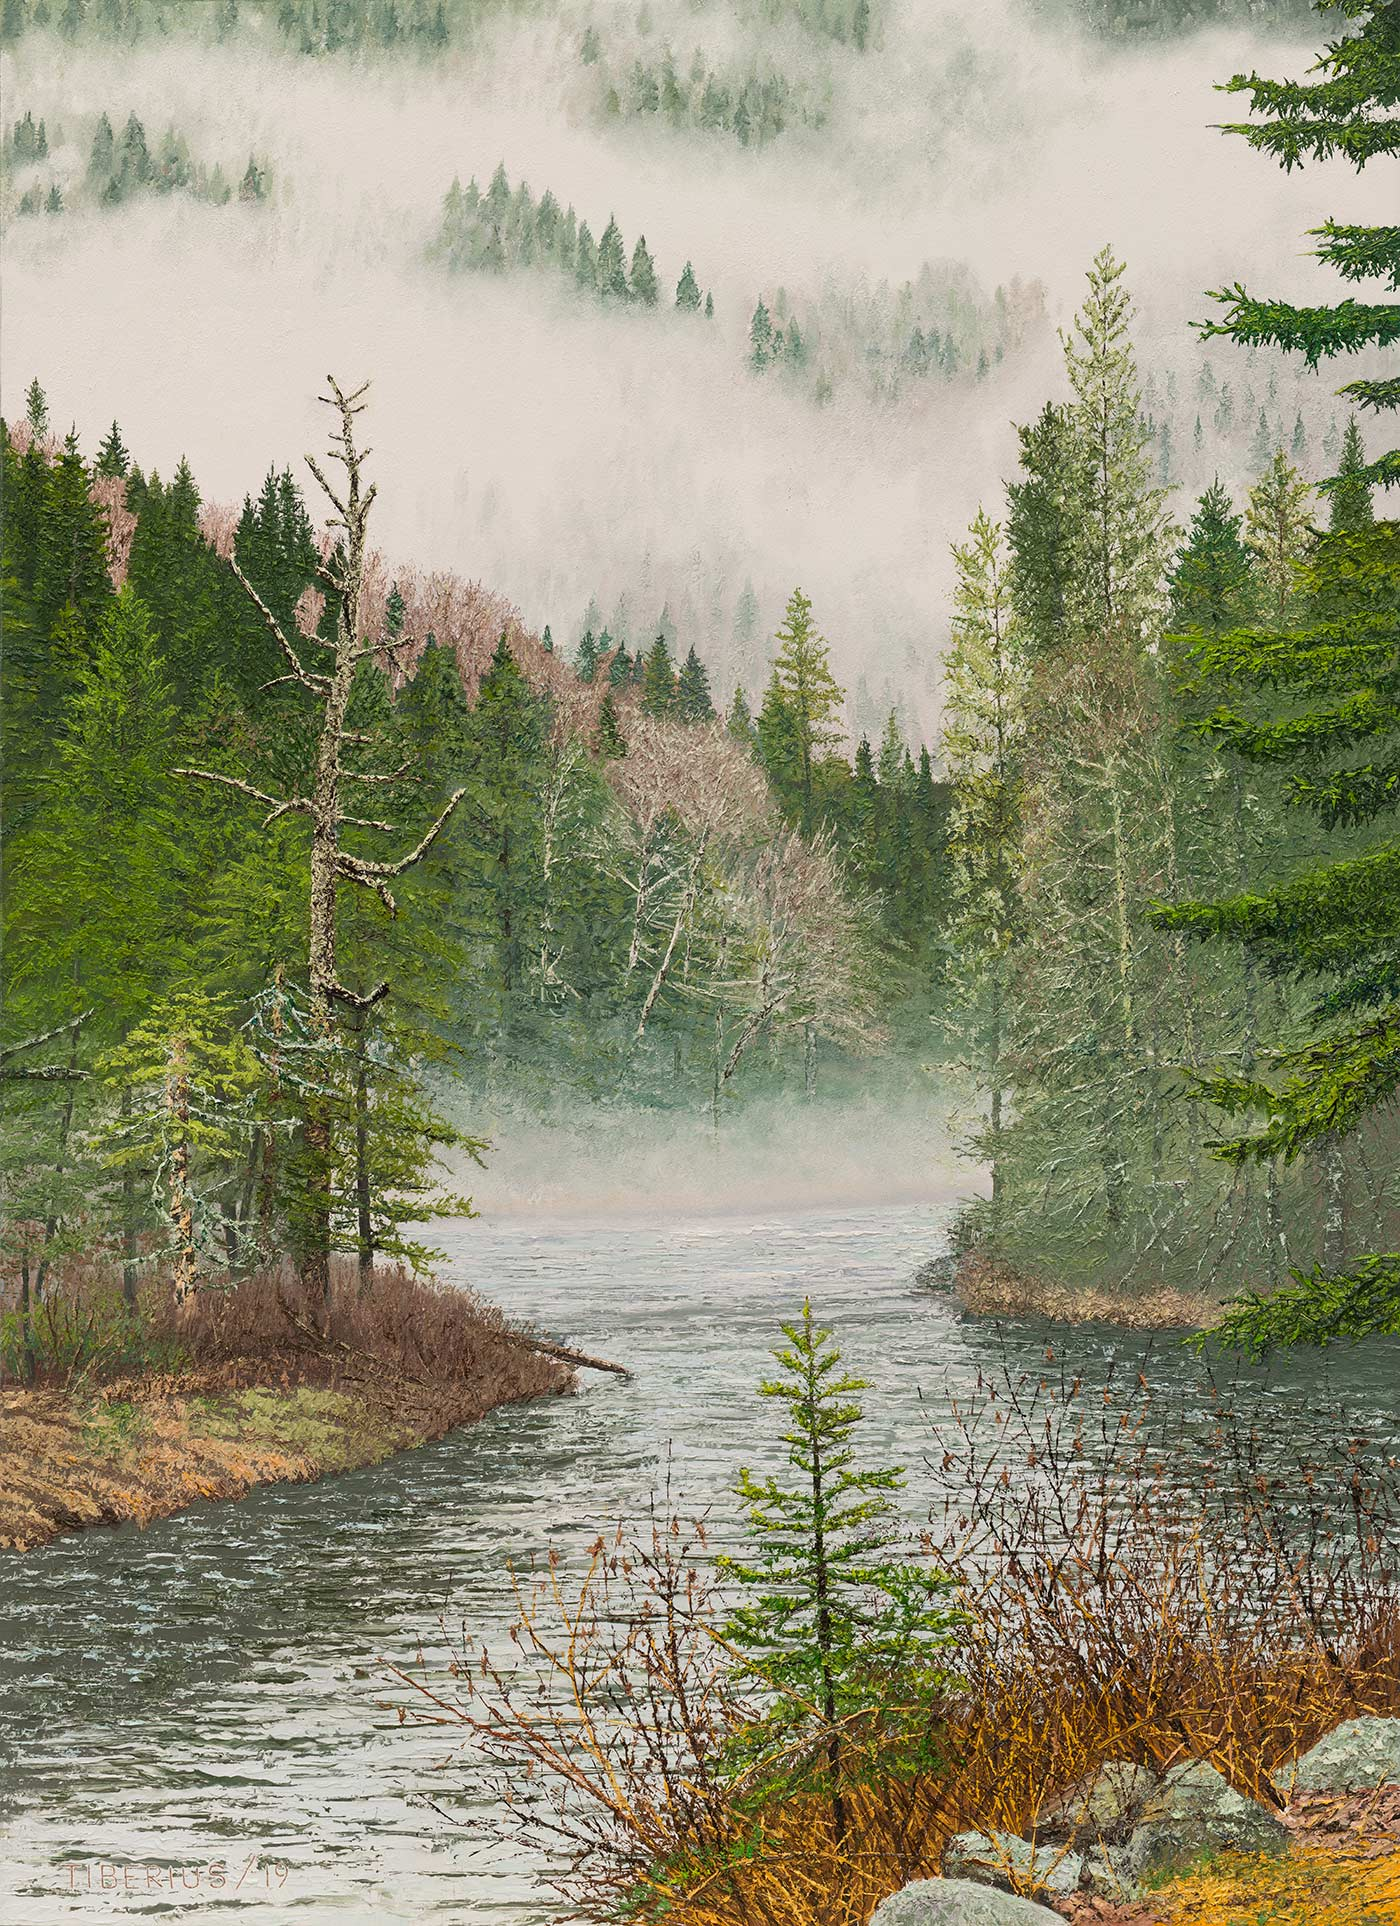 Jacques Cartier River, Morning Mist | Richard Tiberius